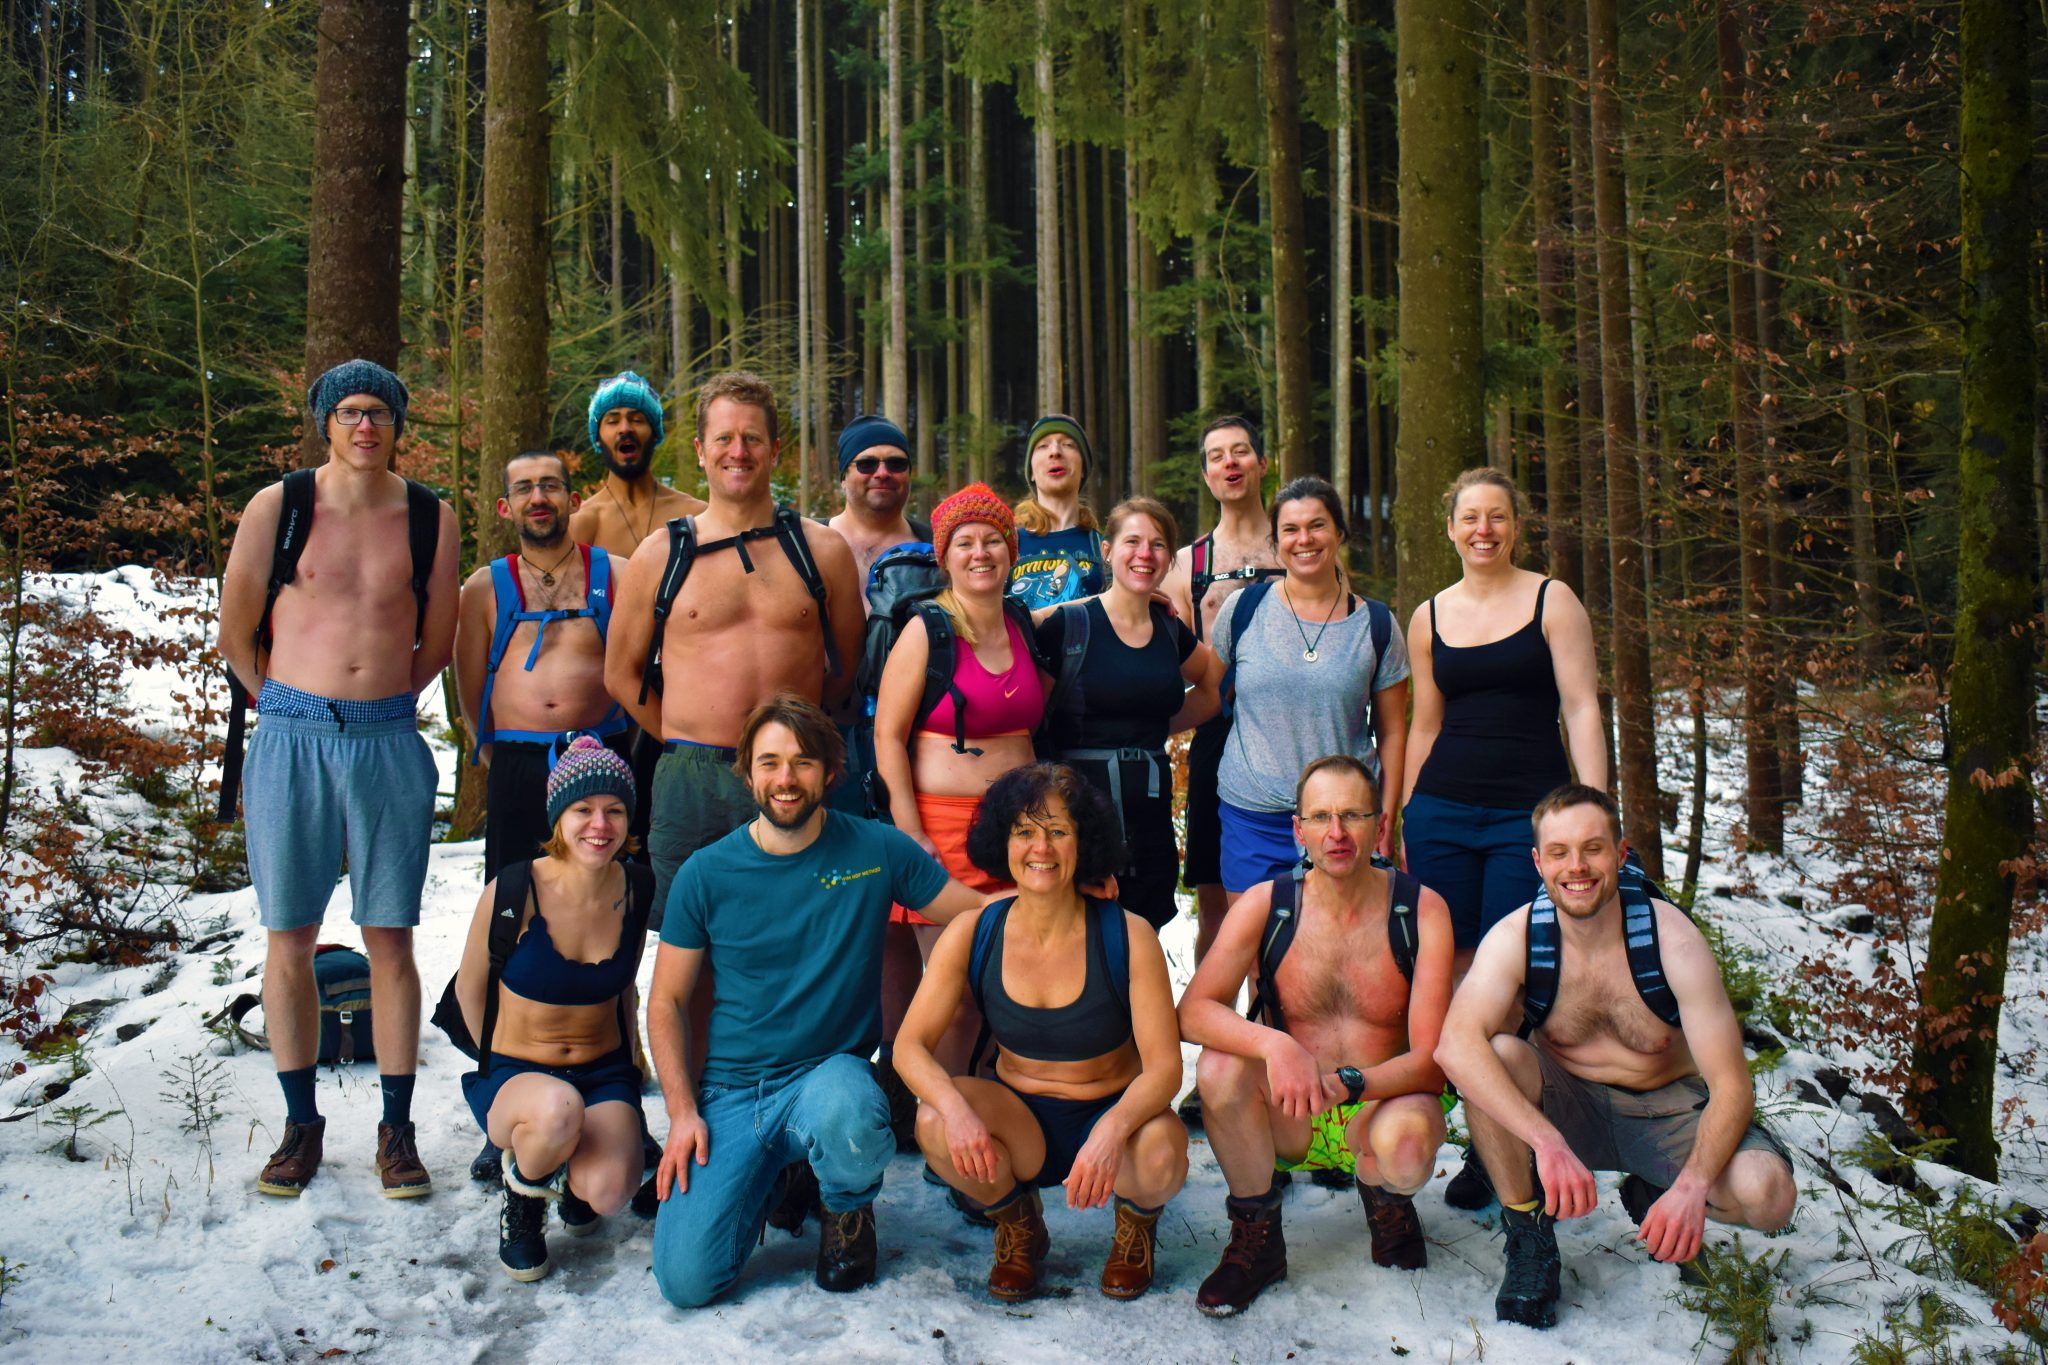 Wim Hof Winter Expedition - Sven Kimenai - Wim Hof Method Instructor & Breathwork Facilitator2